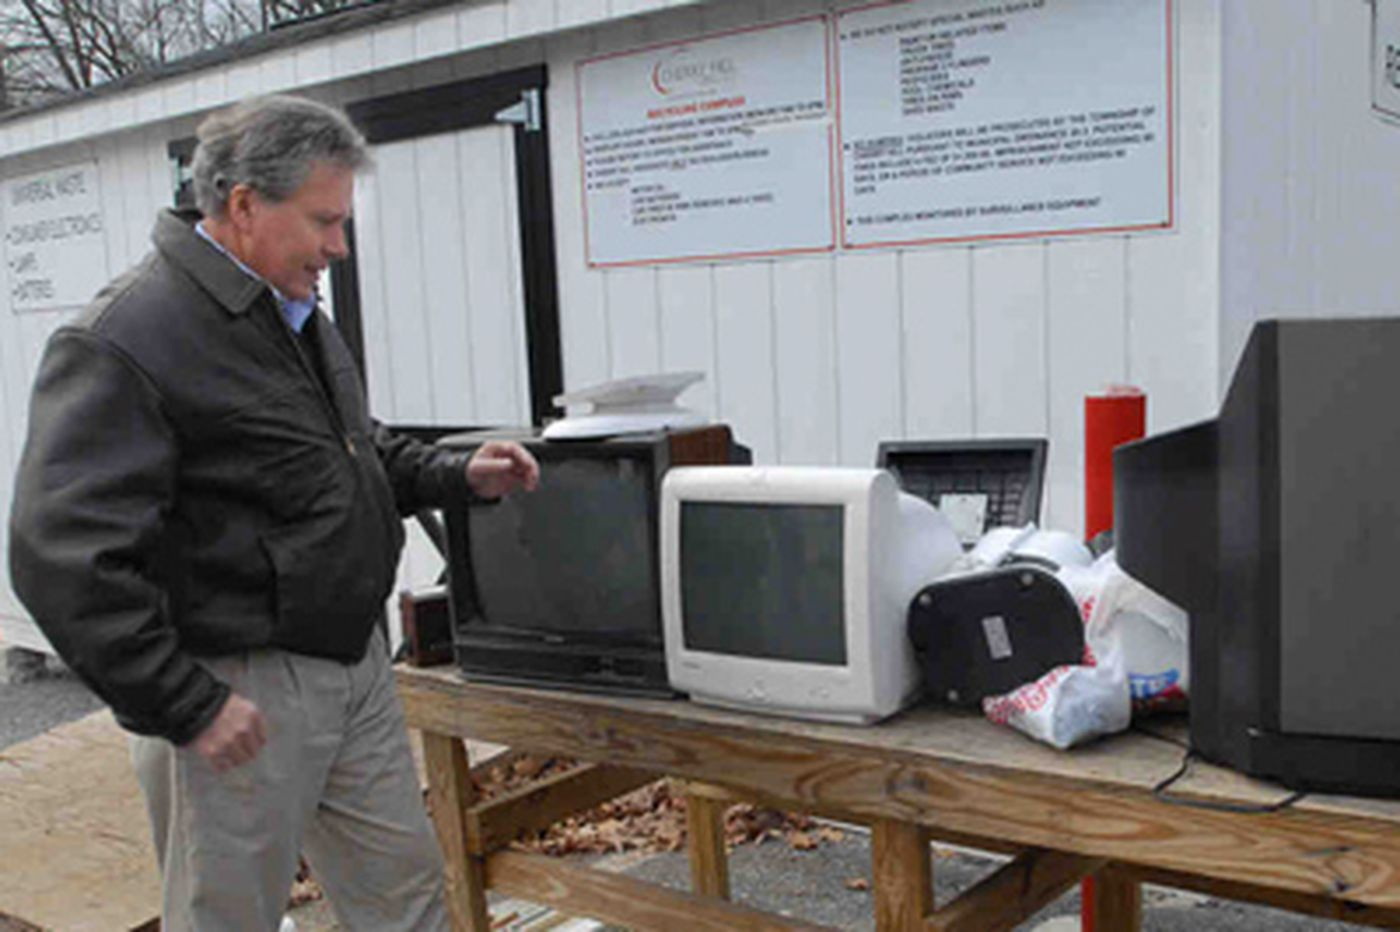 Starting Jan. 1, N.J. electronics are to be recycled, not landfilled